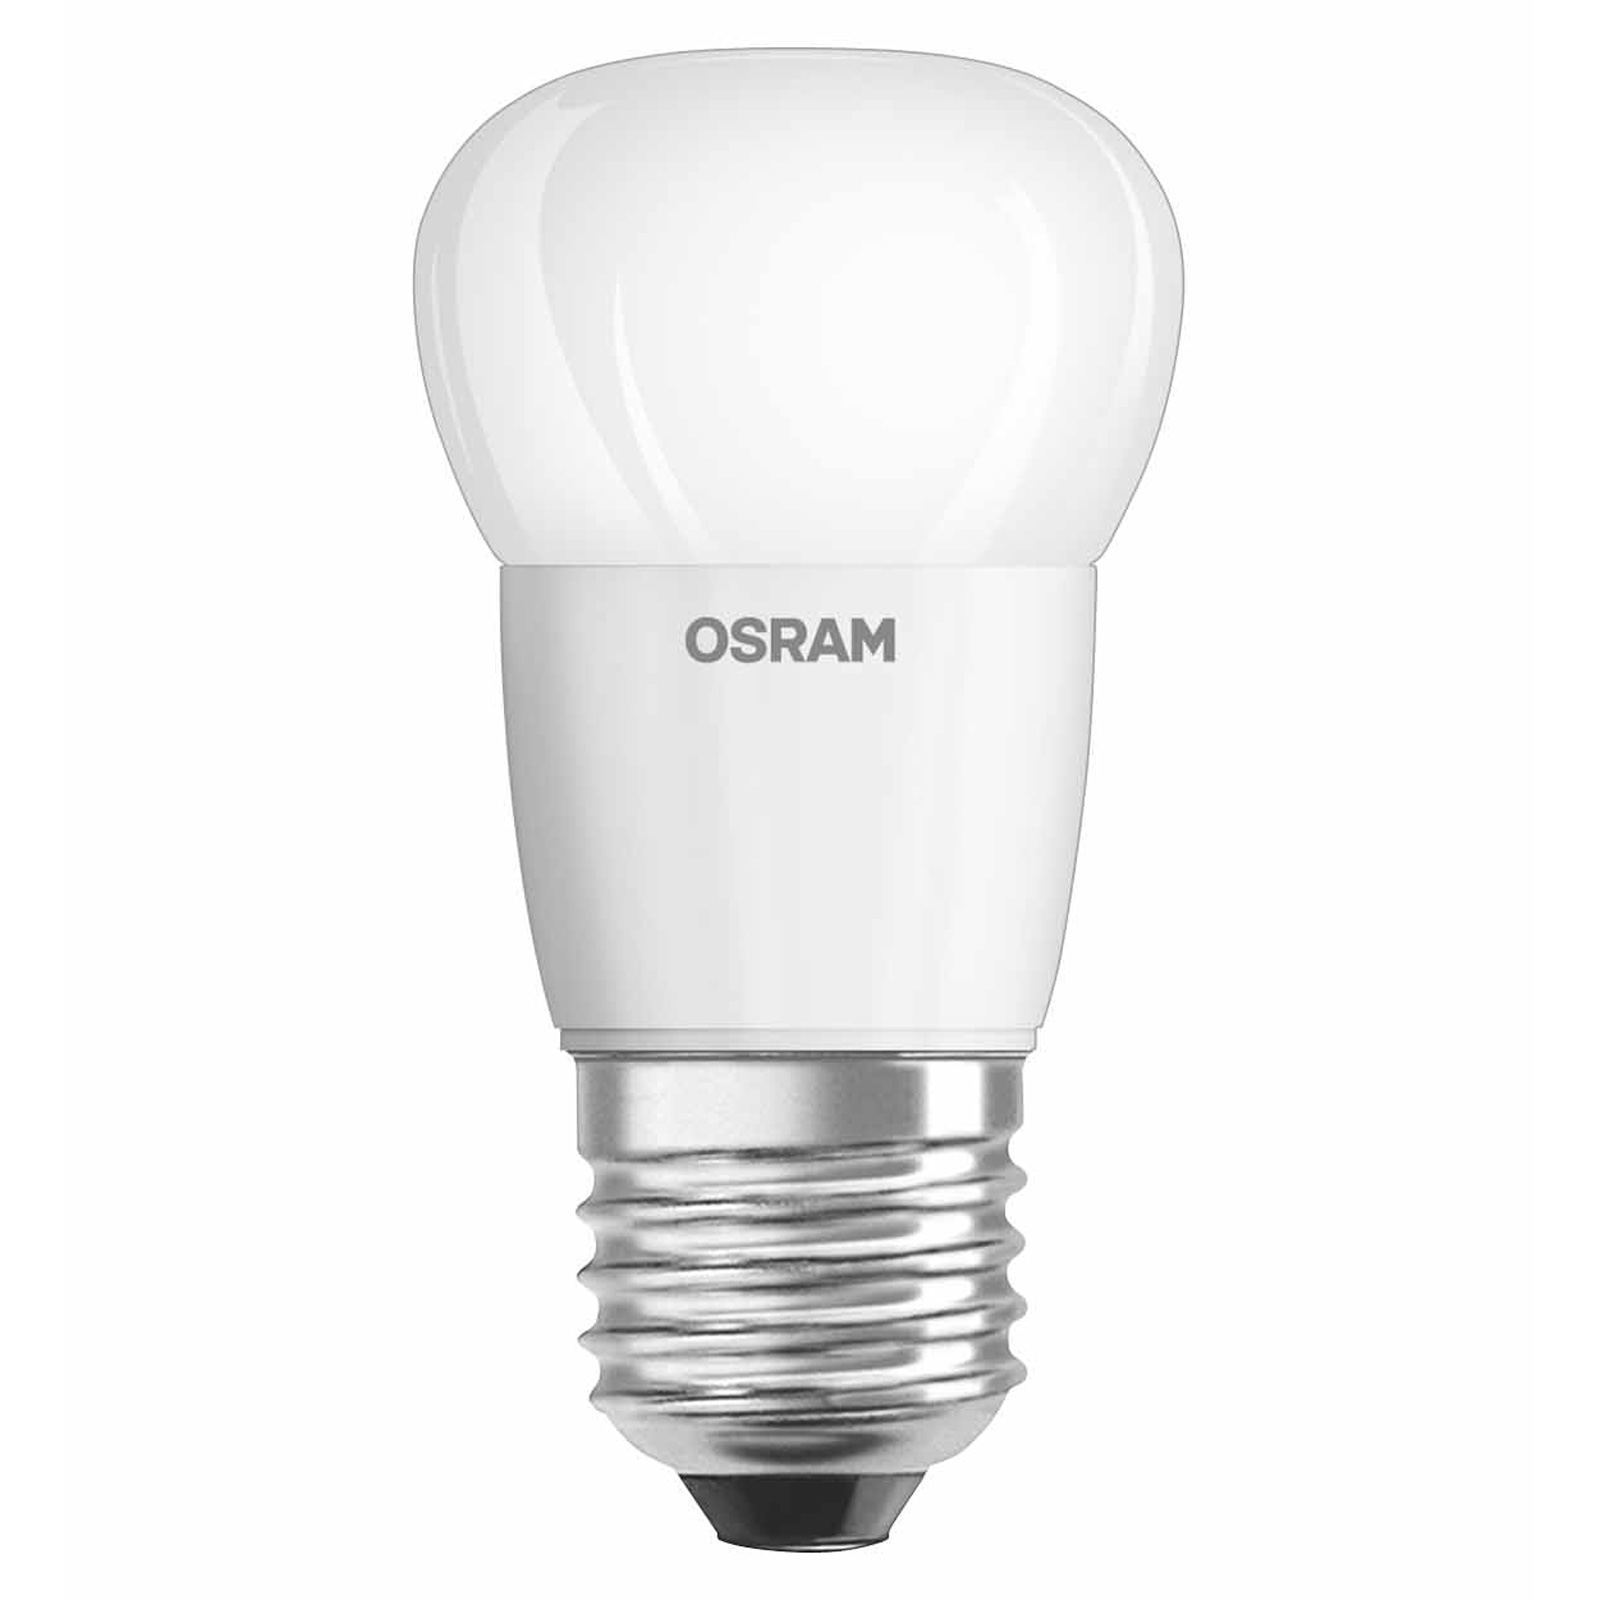 osram led star classic p 40 e27 5 8 watt ersatz f r 40 watt 470 lumen warmwei. Black Bedroom Furniture Sets. Home Design Ideas